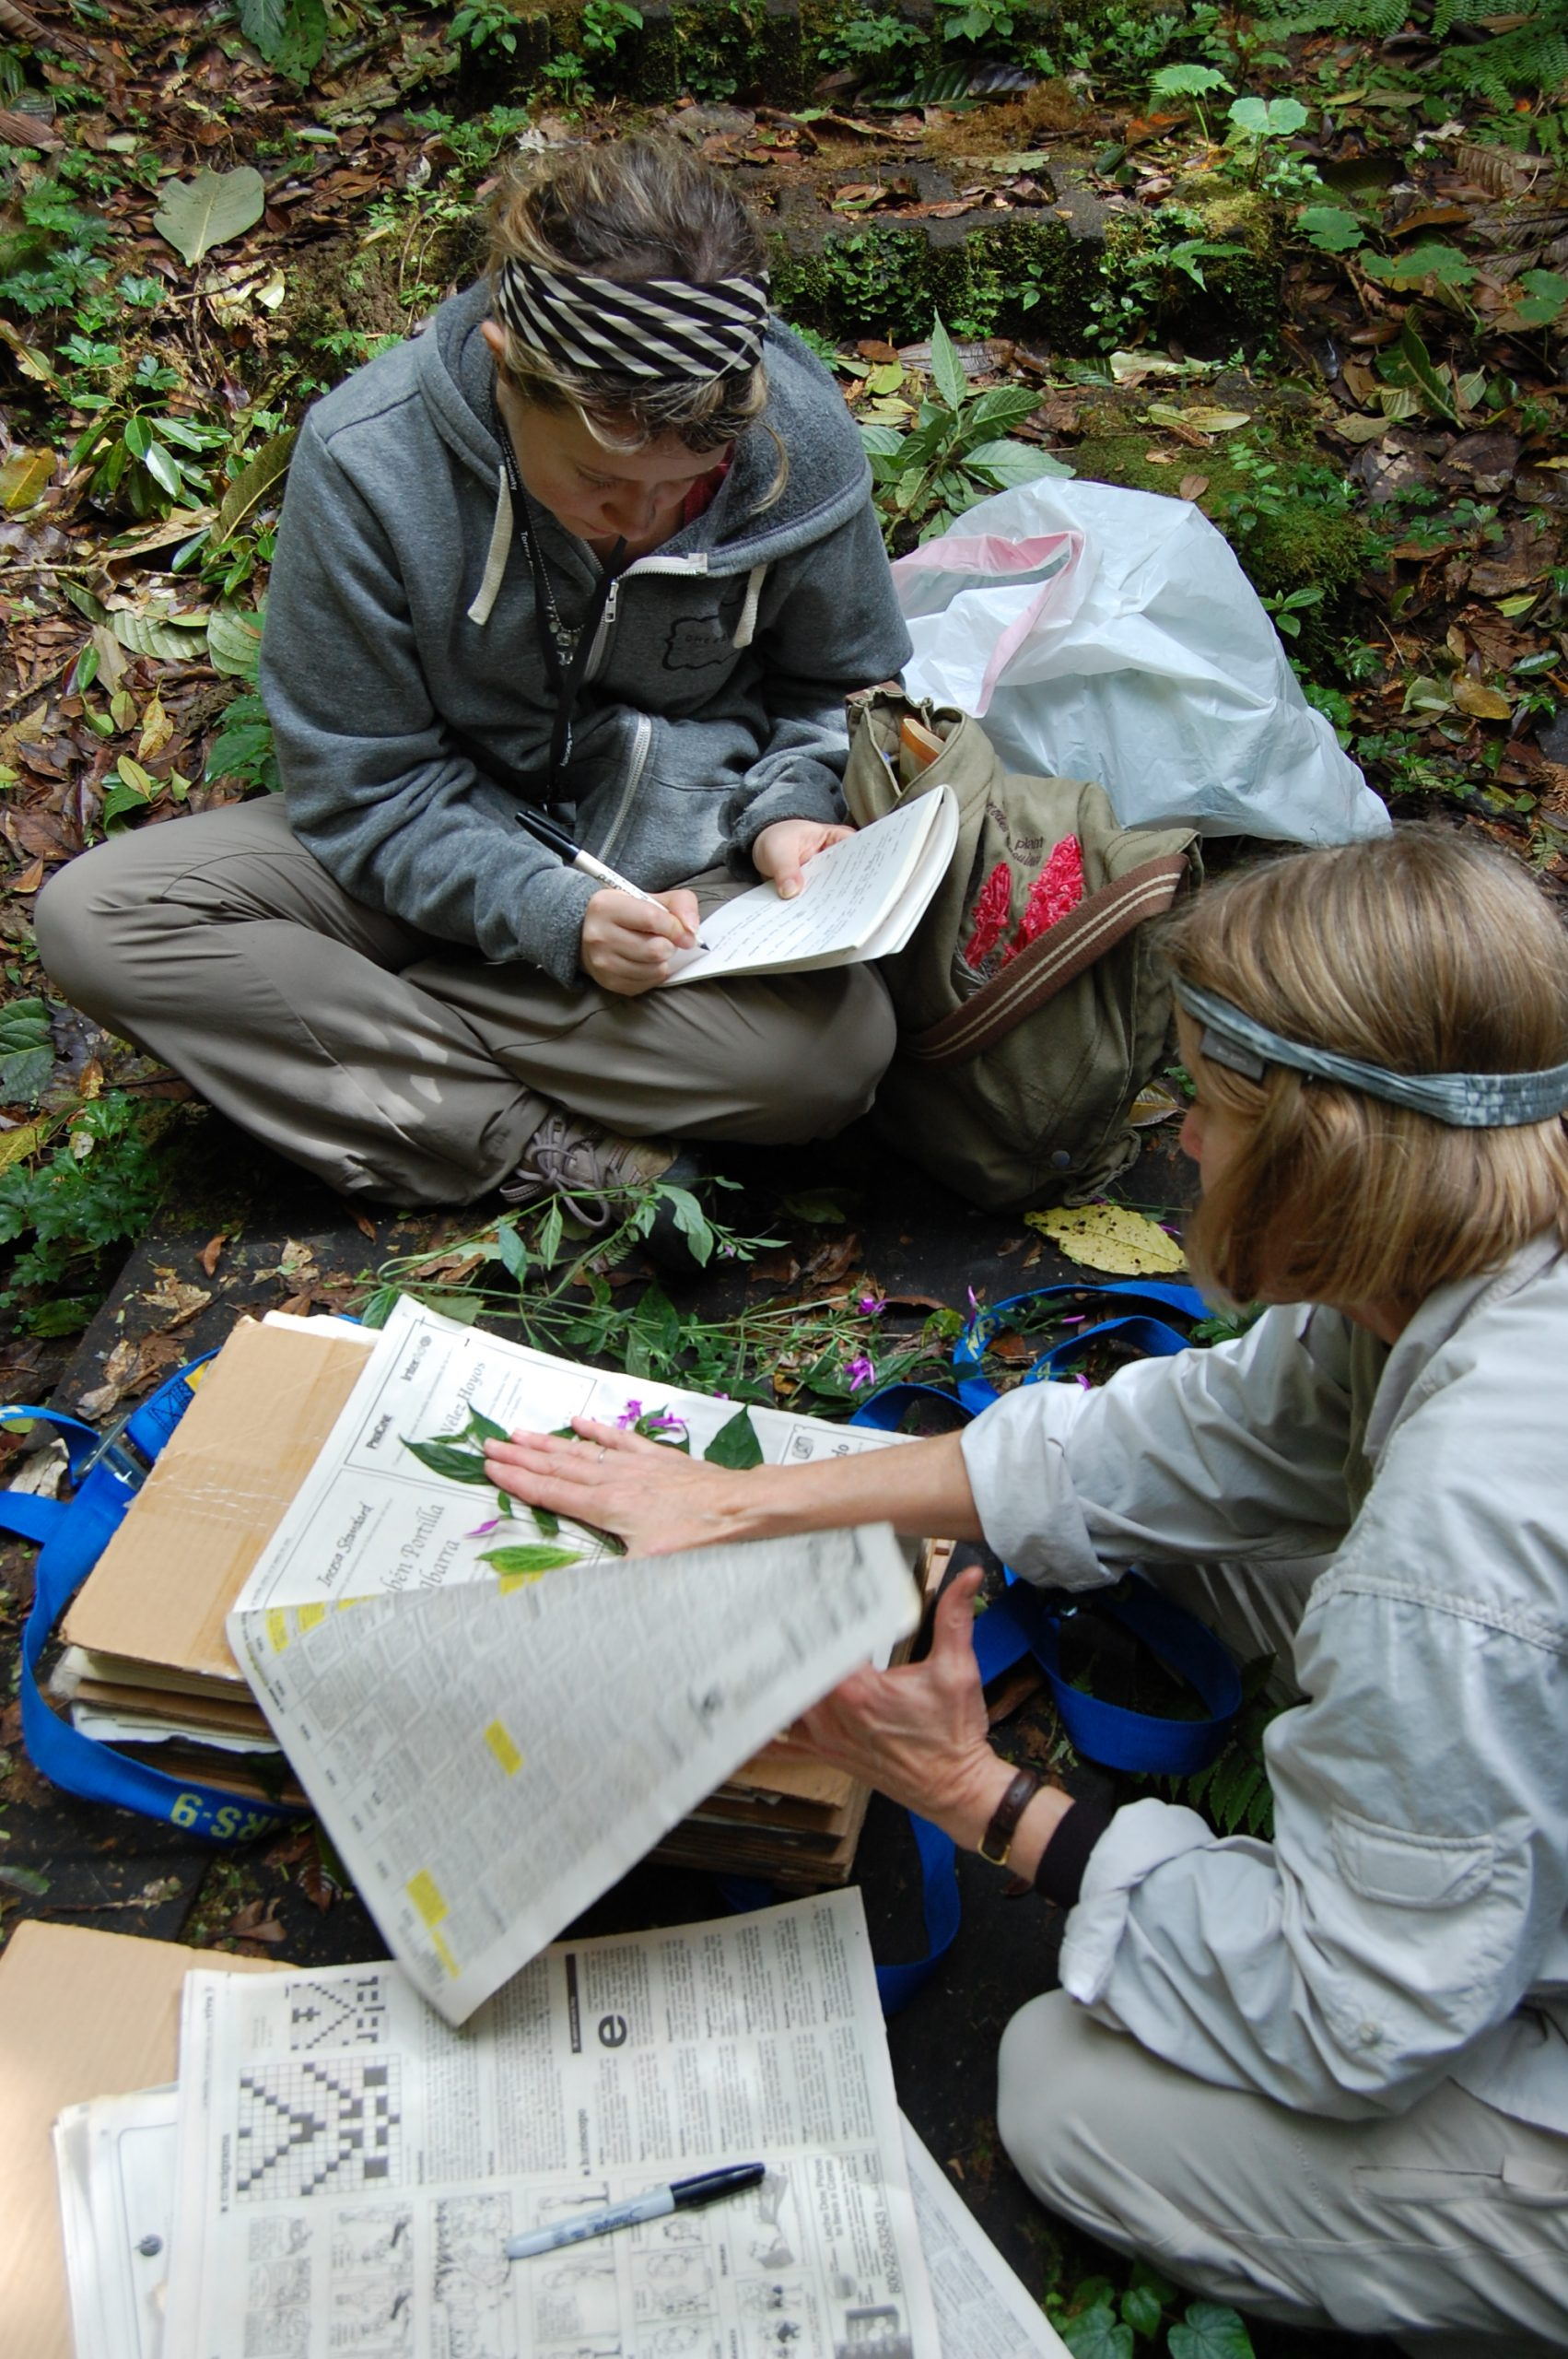 In conjunction with Claremont Graduate University, Rancho Santa Botanic Garden educates graduate students. Here Lucinda McDade, Ph.D., helps doctorate student Carrie Kiel with her field work in Costa Rica. Upon graduating Carrie became a postdoctoral fellow at the garden.